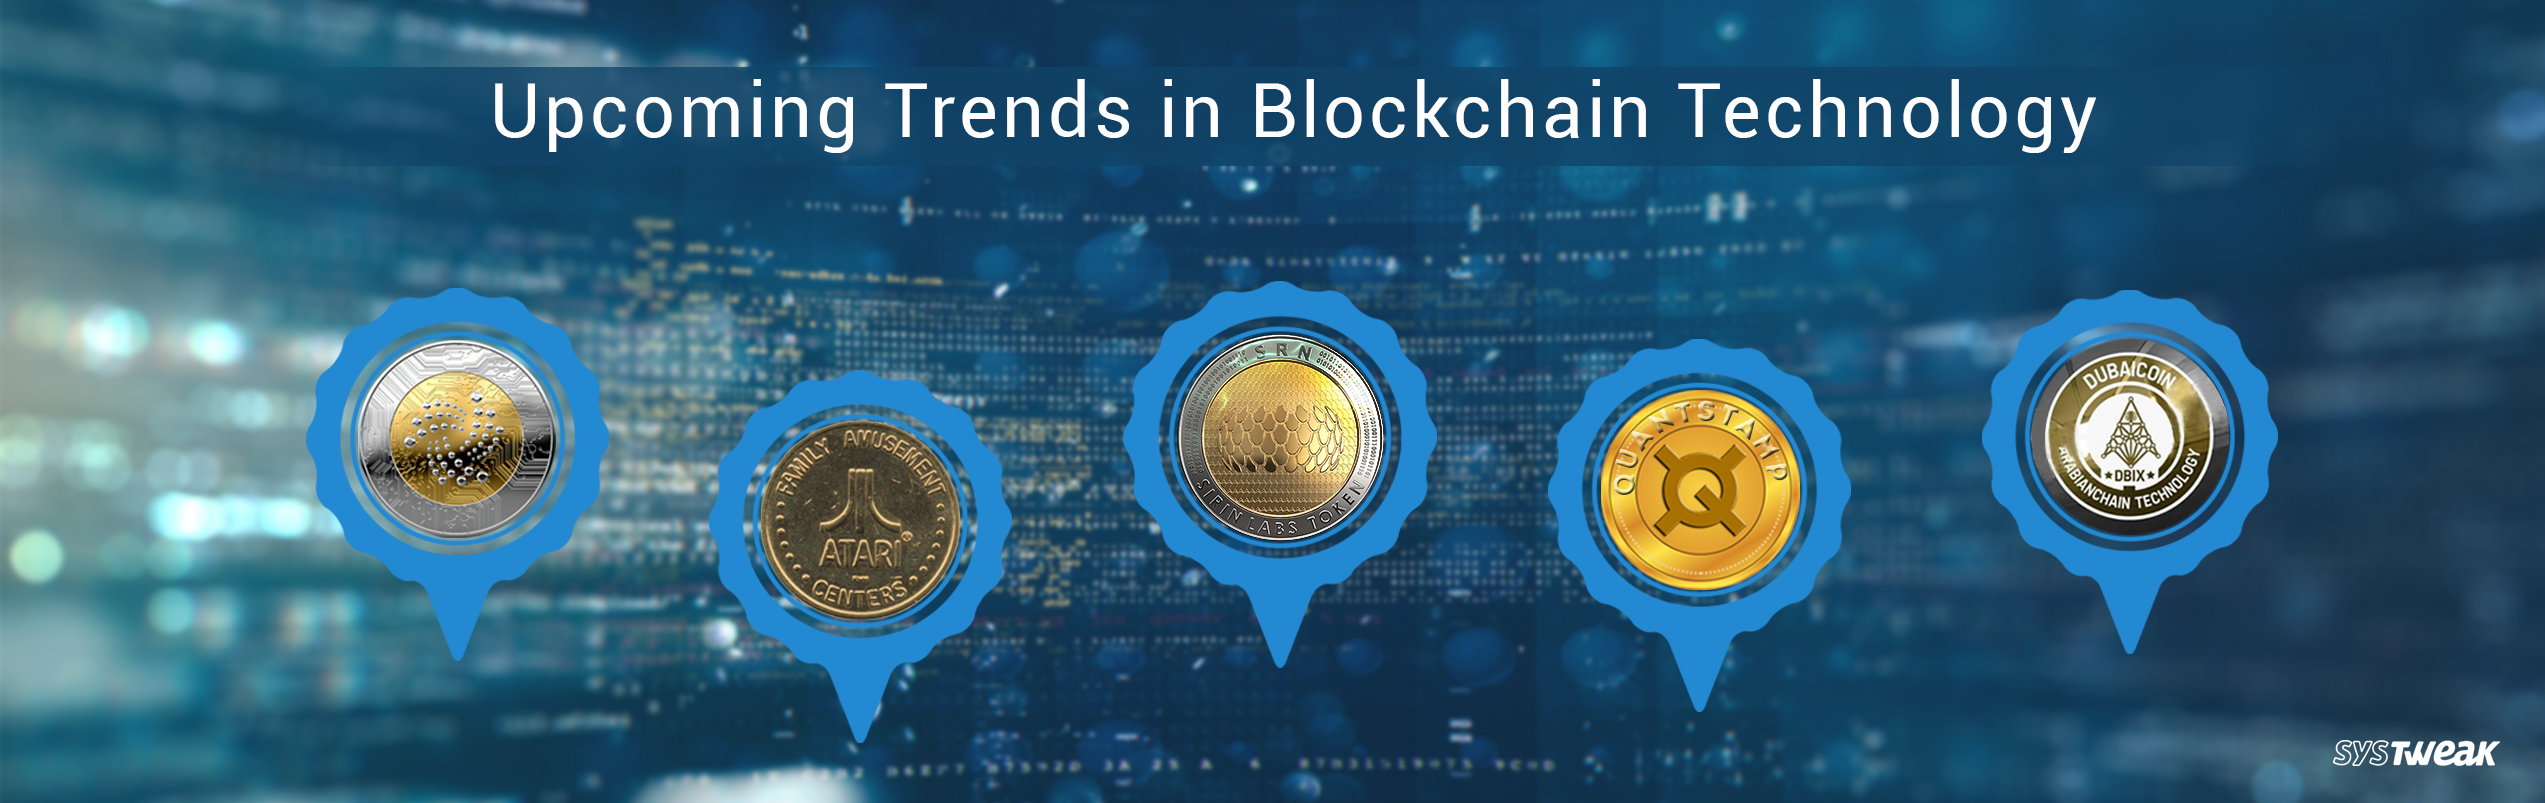 Top 5 Trends of Blockchain Technology 2018